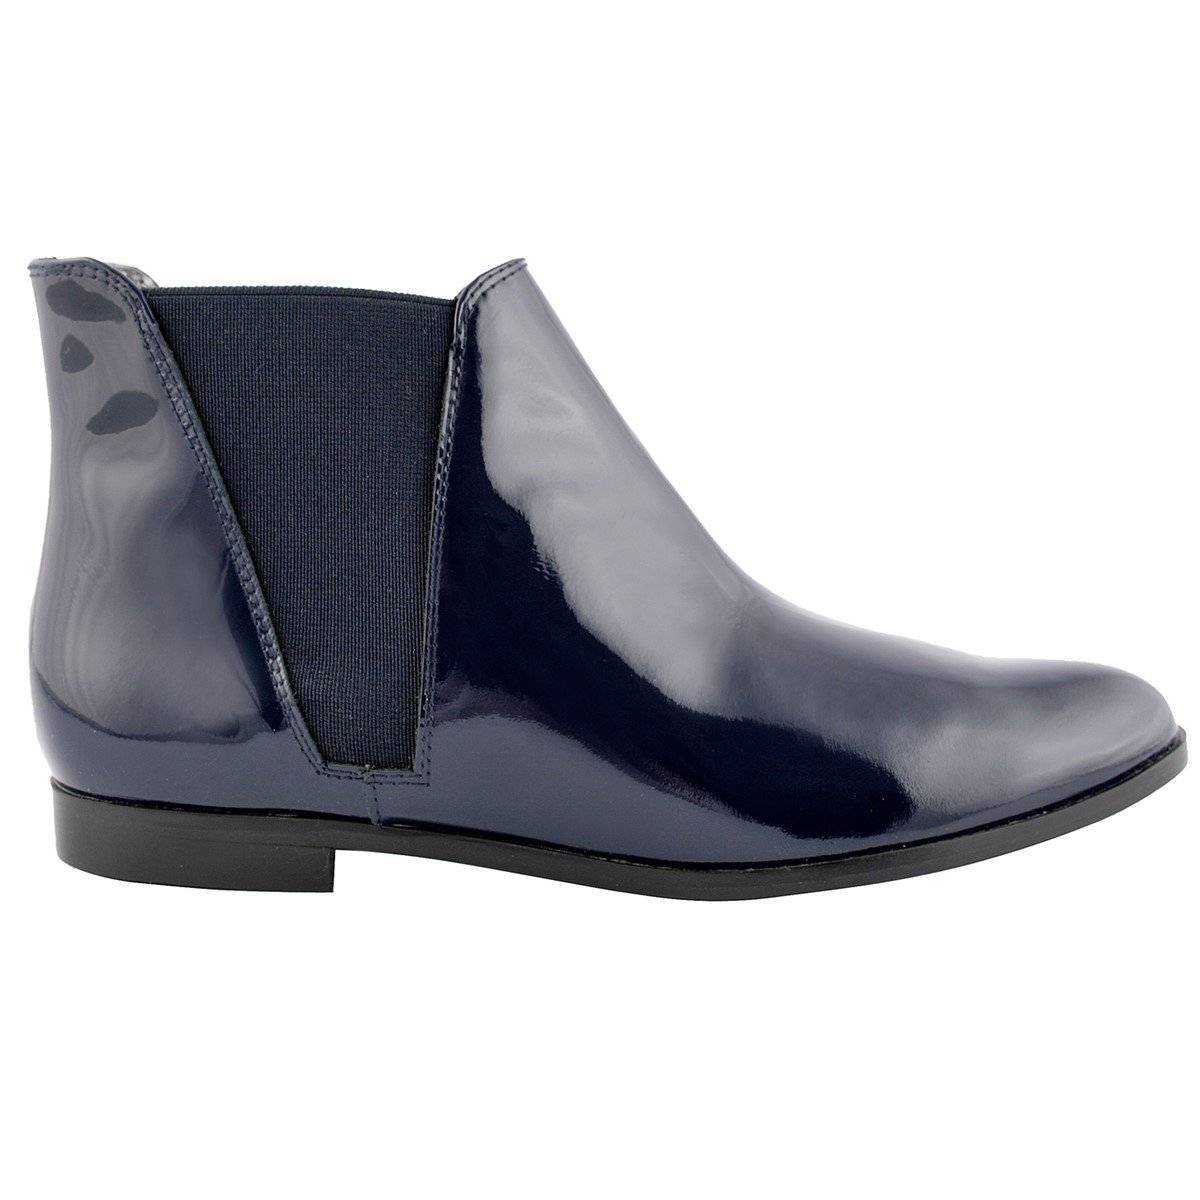 Exclusif Paris Bottines Exclusif Boyish Bleu Marine Bottines Marine 03a45cf - boatplans.space